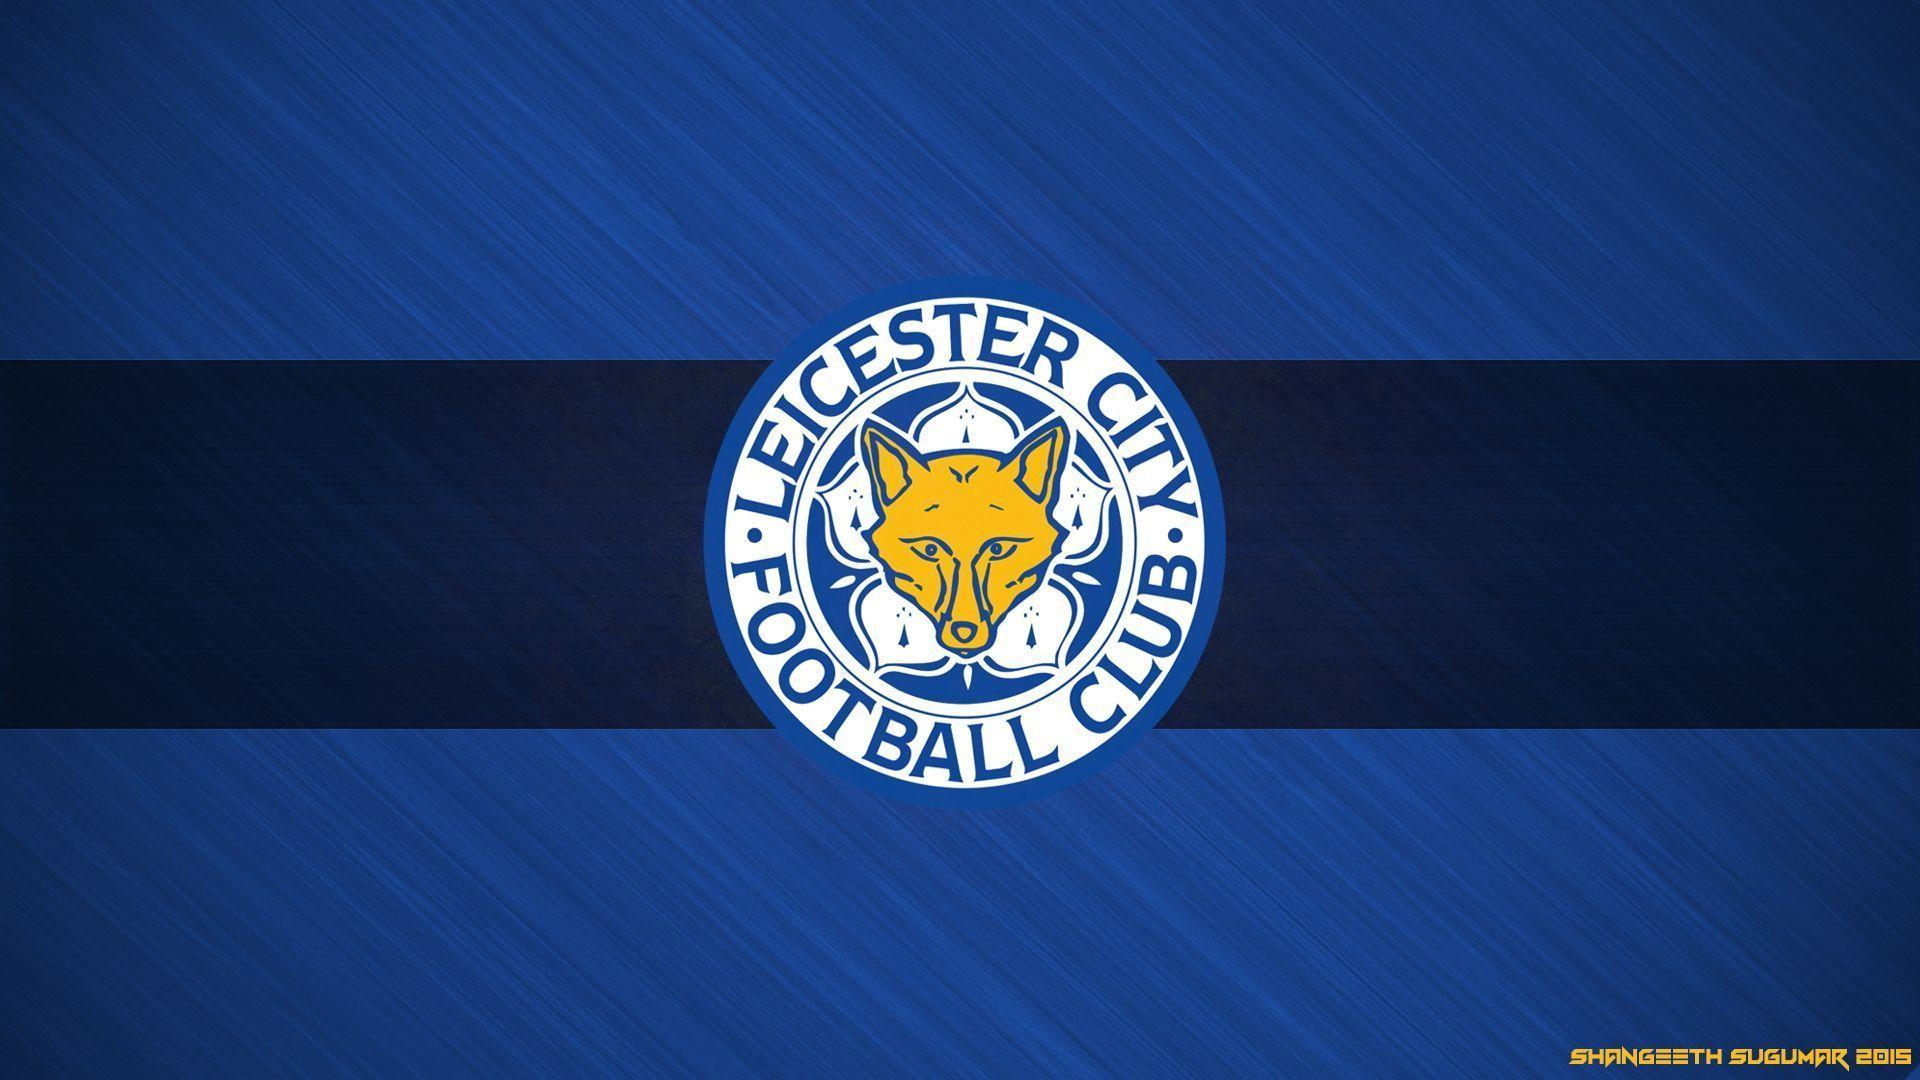 leicester city f.c. wallpapers - wallpaper cave